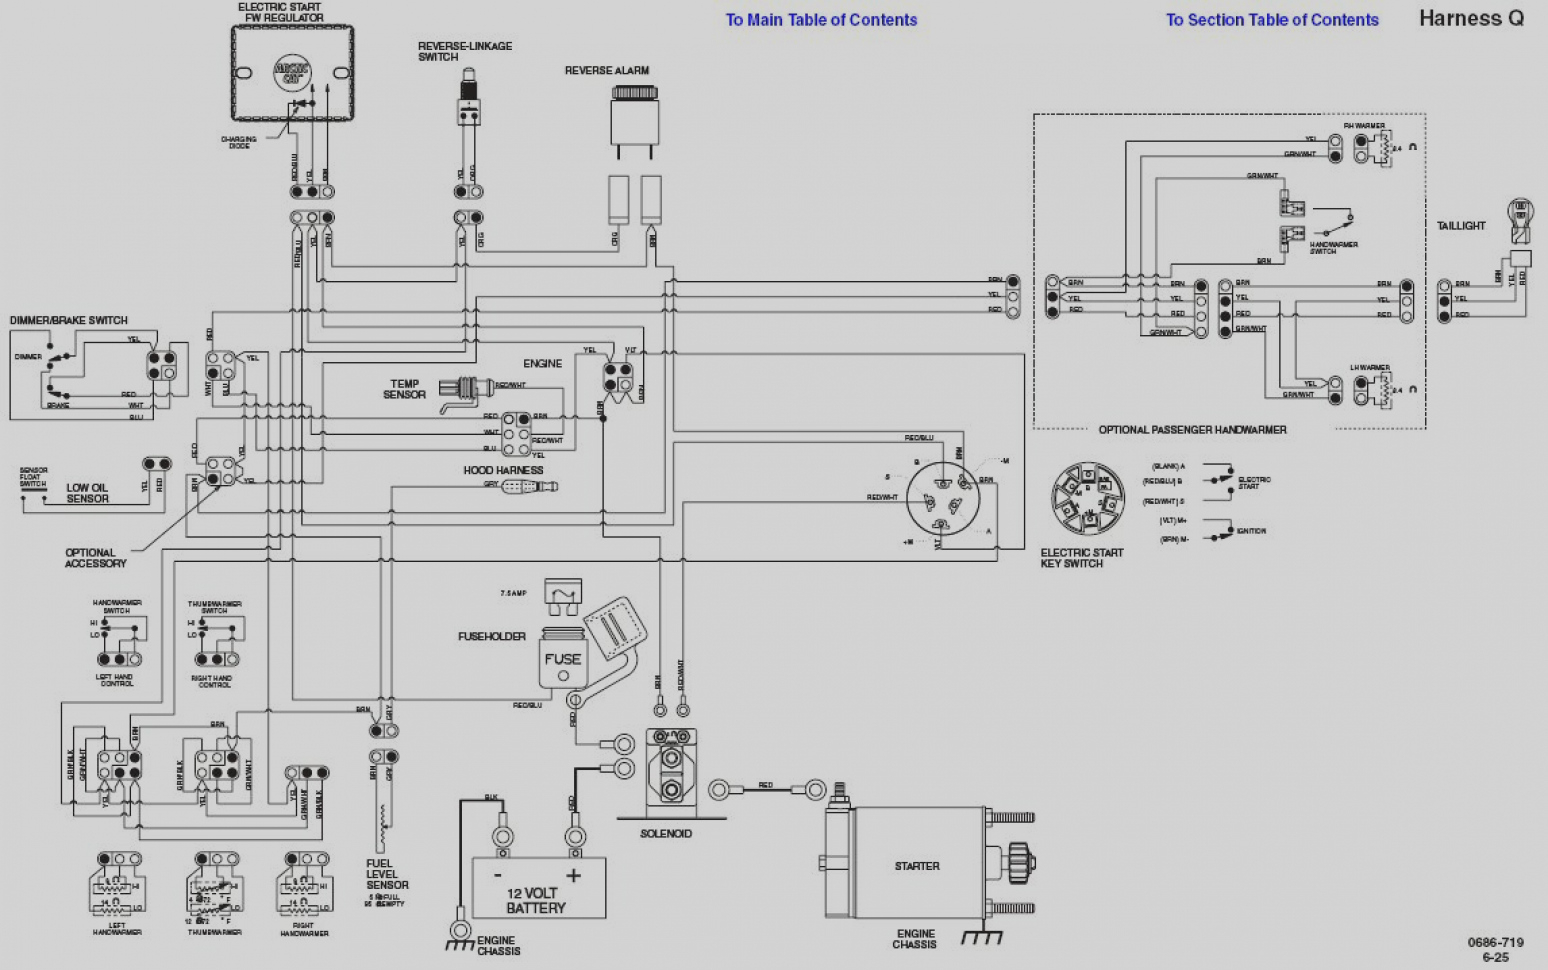 polaris ranger wiring diagram for heater 6 7 ulrich temme de \u2022polaris ranger wiring diagram for heater schematic diagram rh 80 3dpd co 2005 polaris ranger wiring